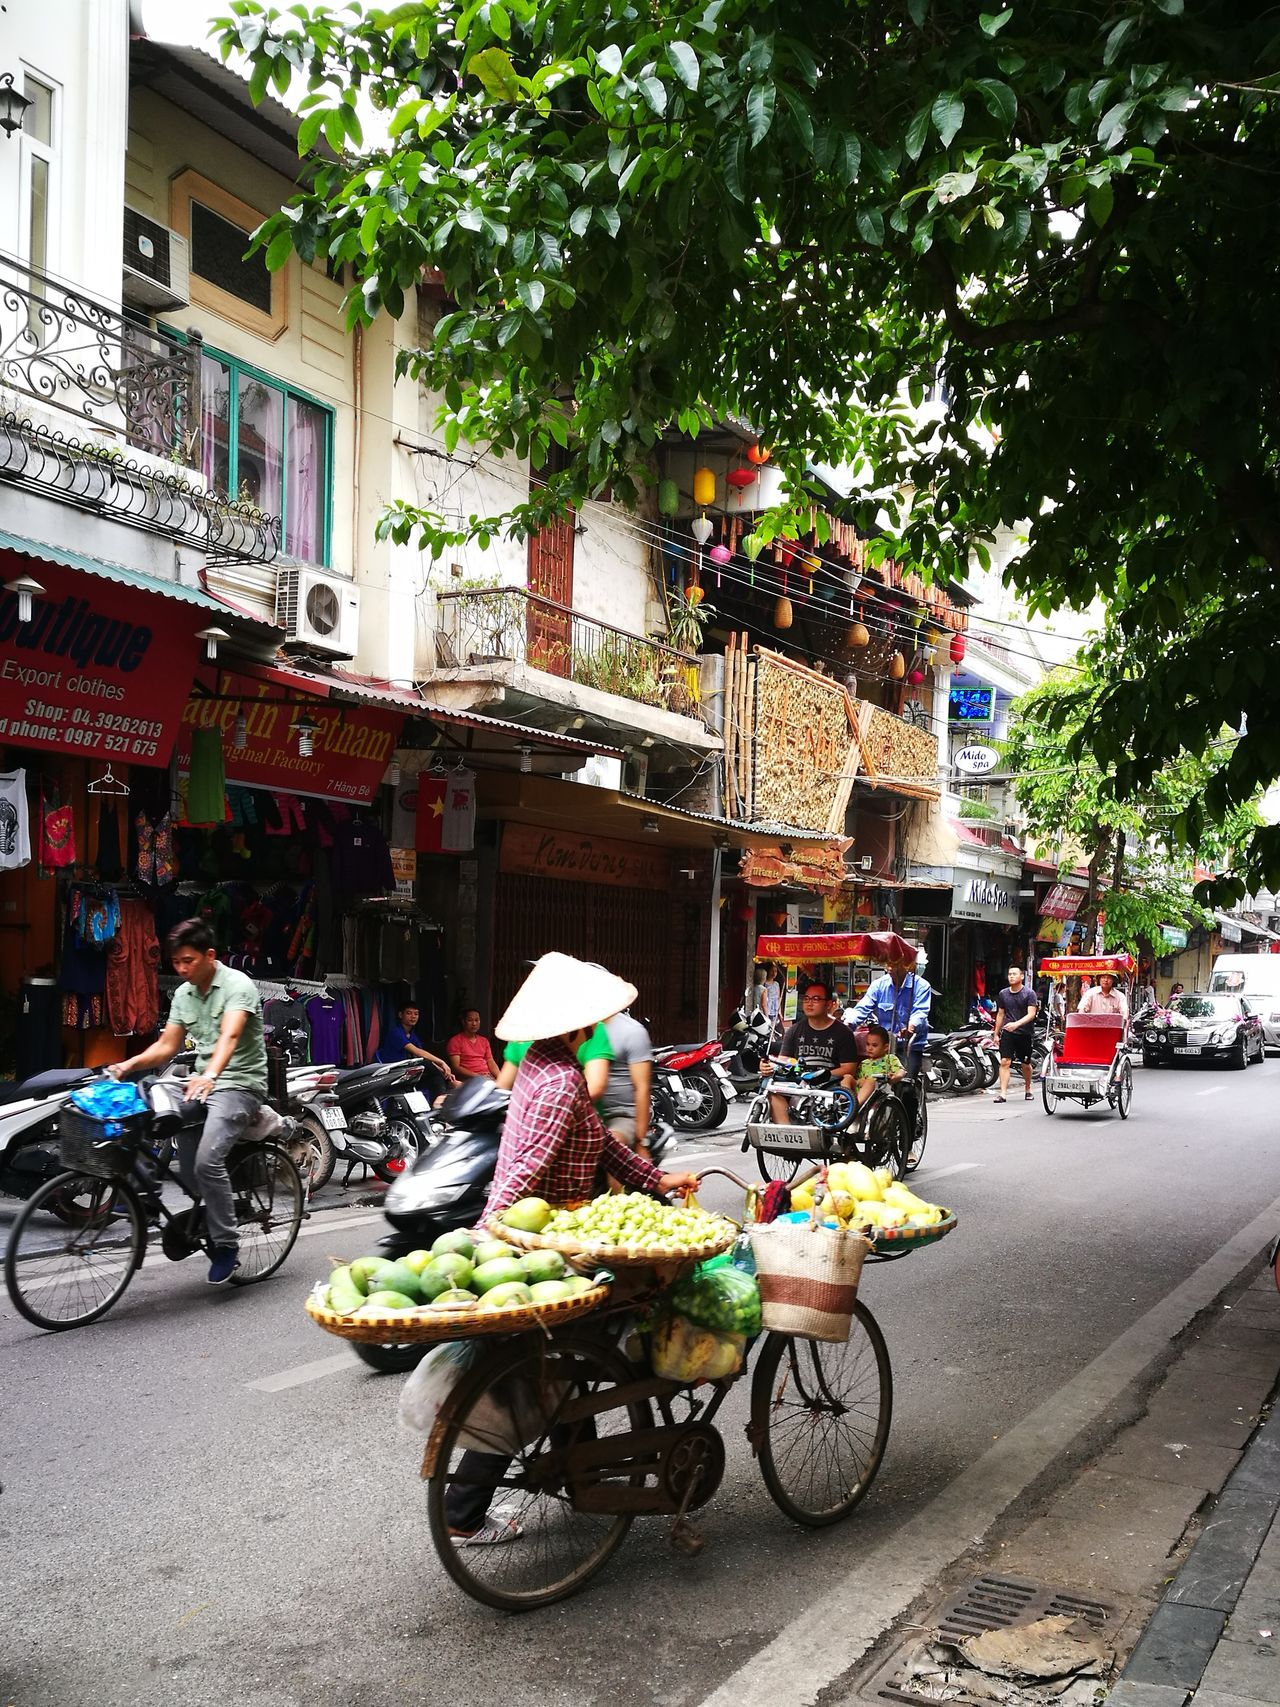 Bicycle Street Cyclo Woman Fruits Hanoi Vietnam Old Quarter Asian Conical Hat Neighborhood Map Street People Non La